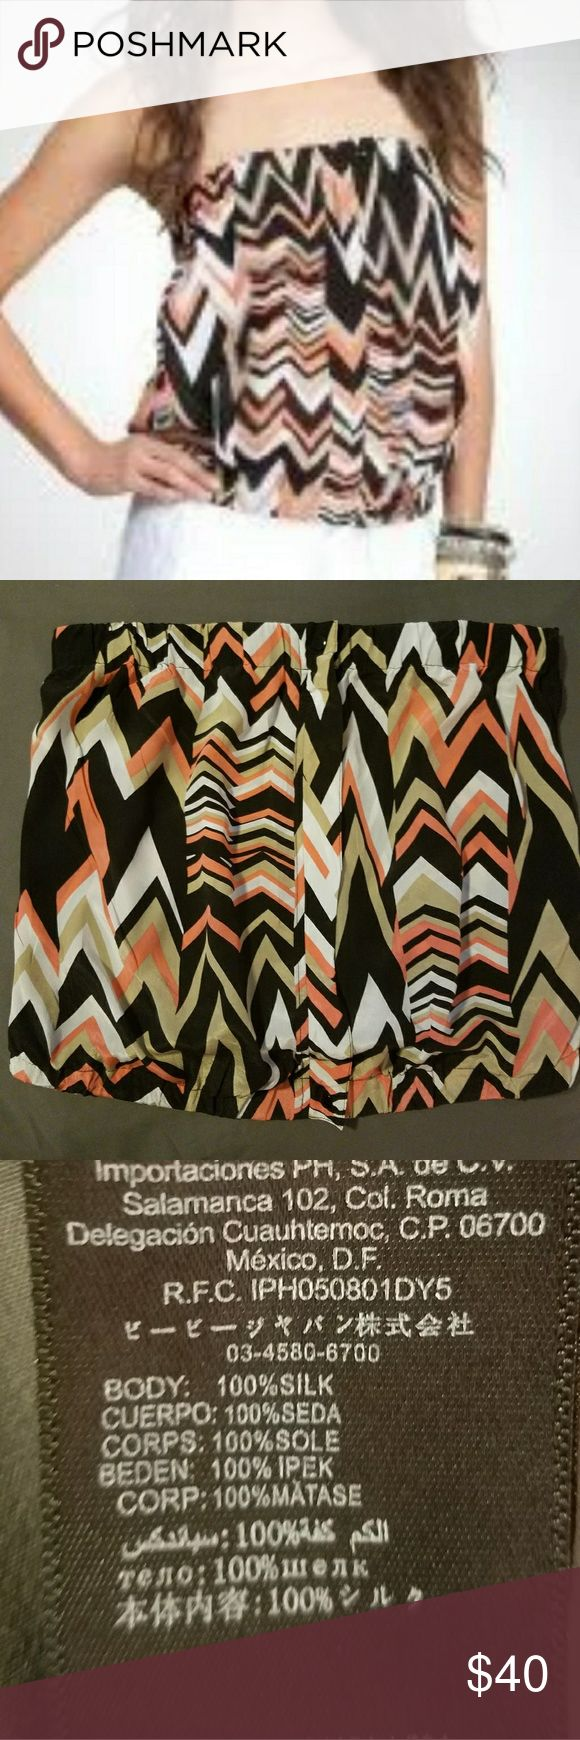 BEBE Chevron Top BEBE Top -chevron print -2 faux buttons -salmon,black,white,and taupe -100% silk bebe Tops